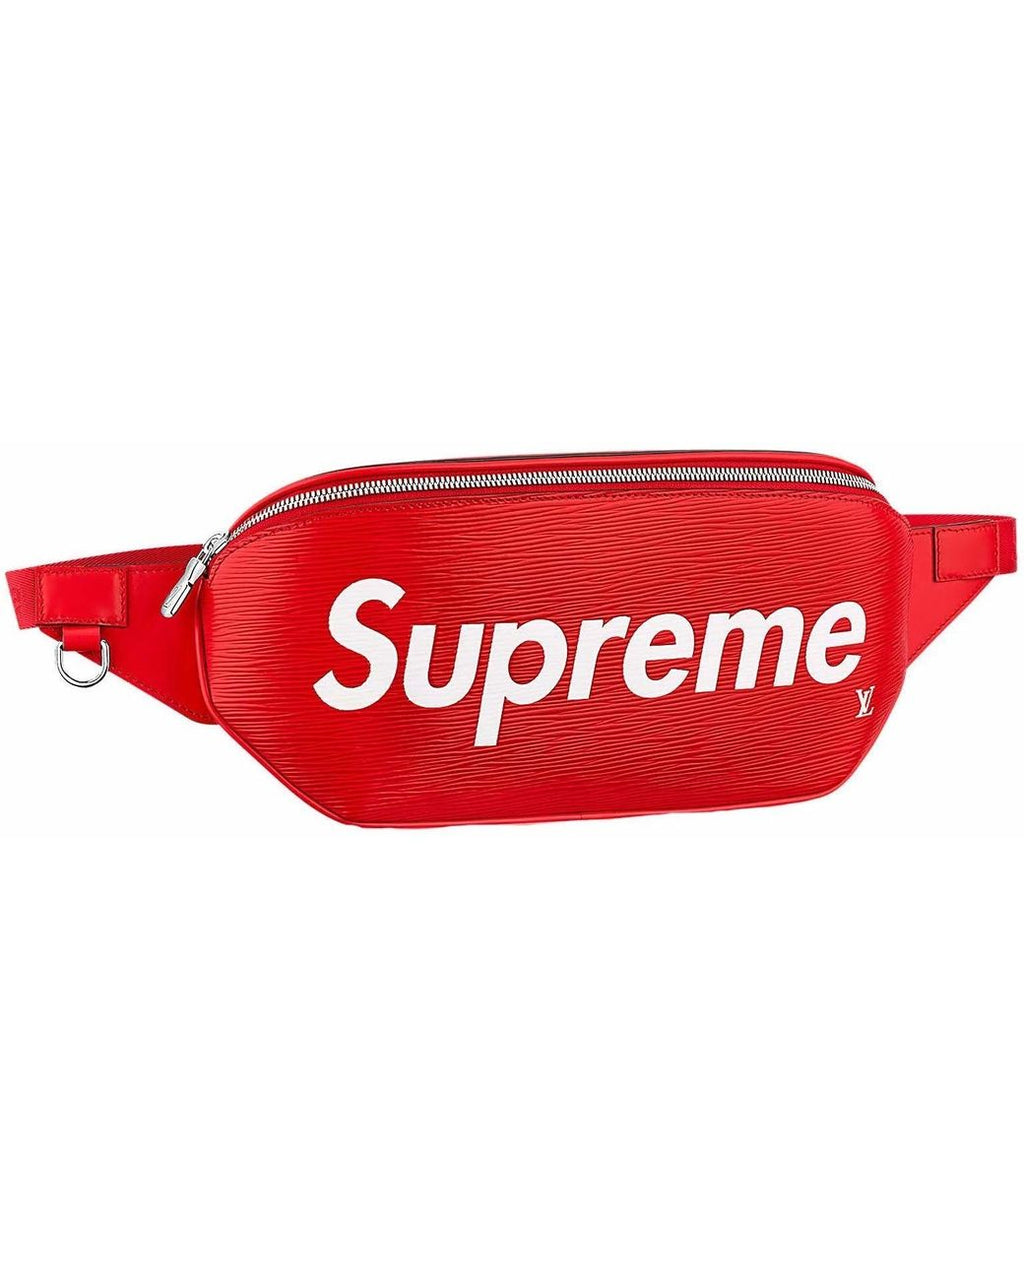 Supreme x Louis Vuitton waist bag